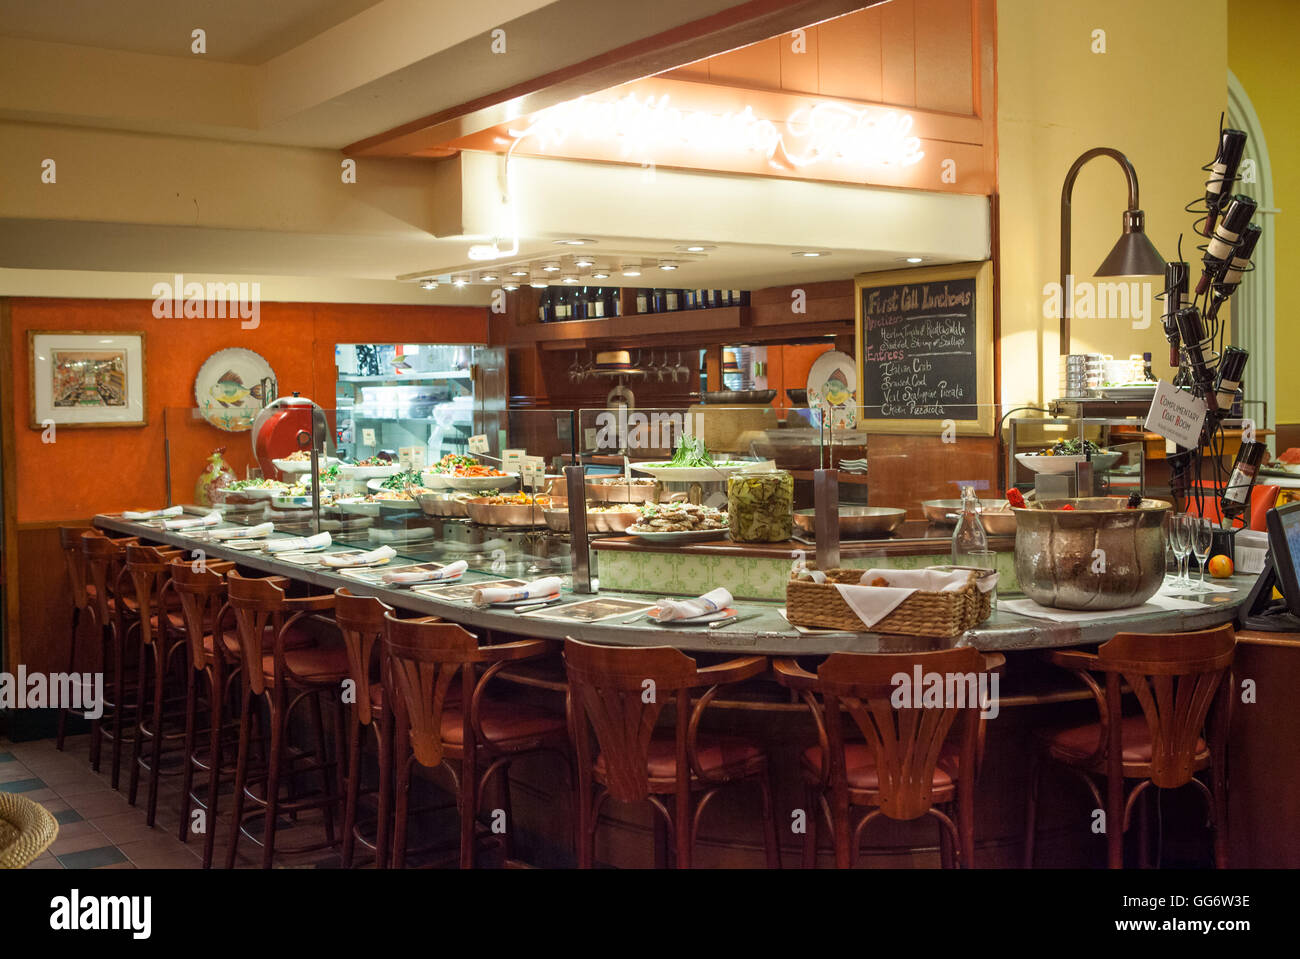 Trattoria Dell'arte Nyc Reviews Trattoria Dell Arte Stock Photos Trattoria Dell Arte Stock